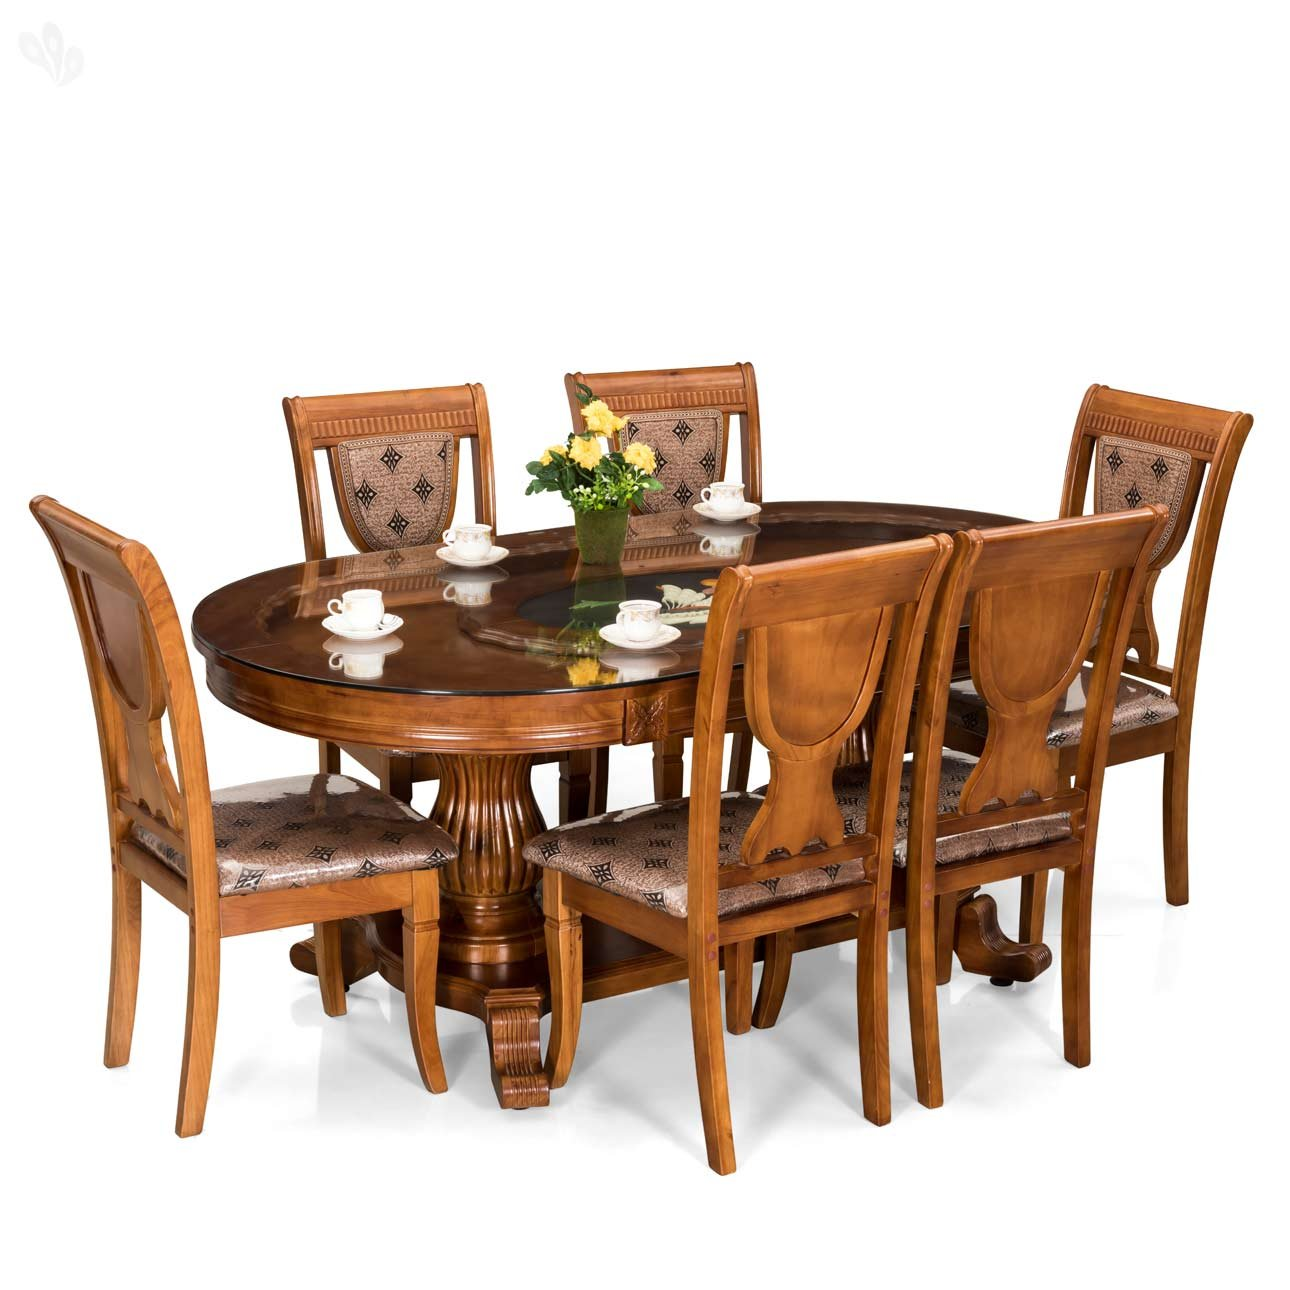 Royal Oak Titan Dining Set with Six Chairs Brown  Amazon.in ...